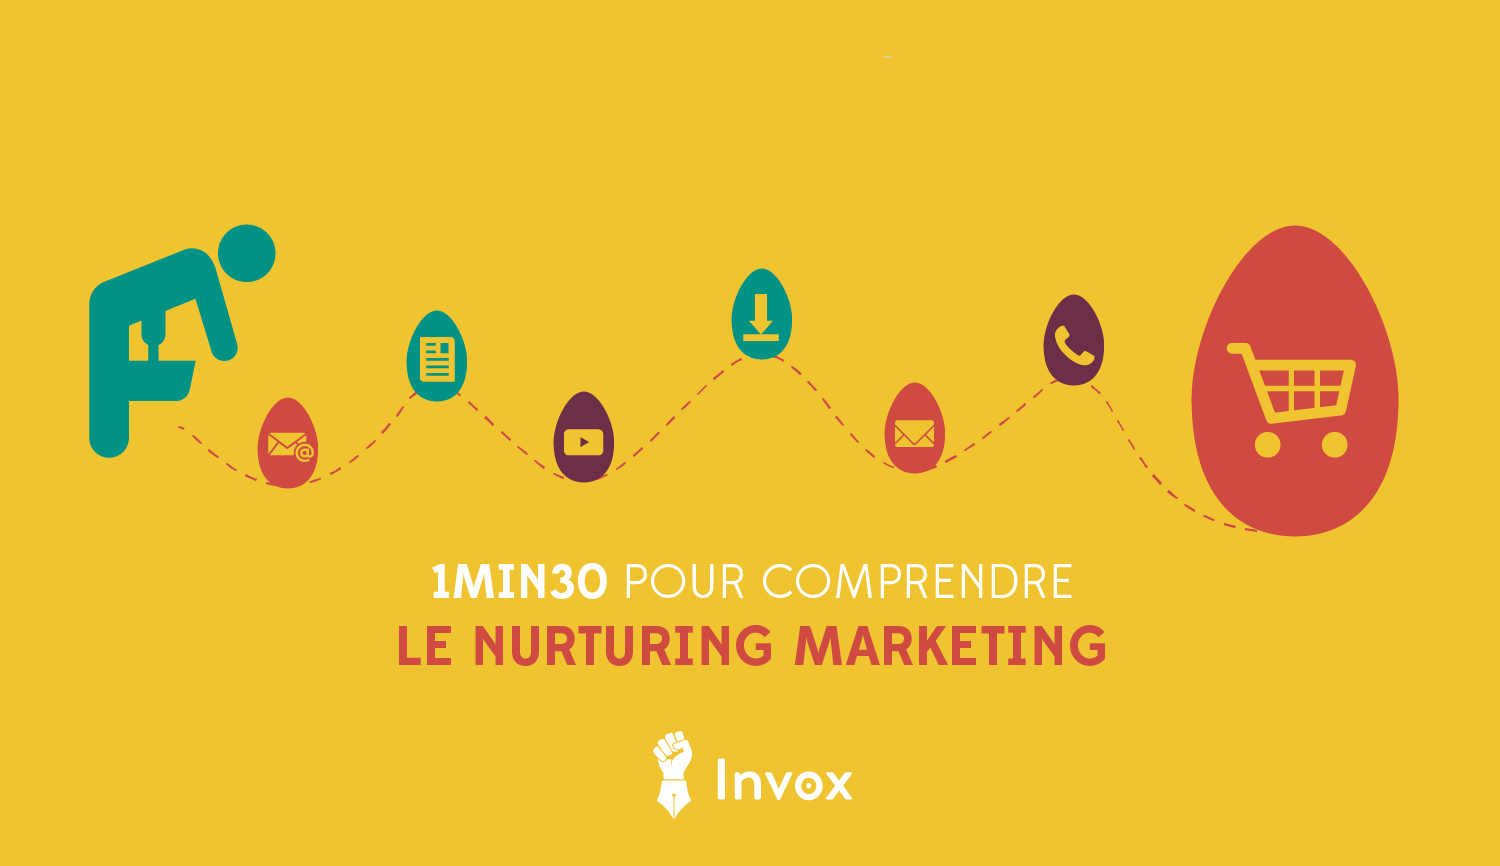 1min30-comprendre-nurturing-marketing